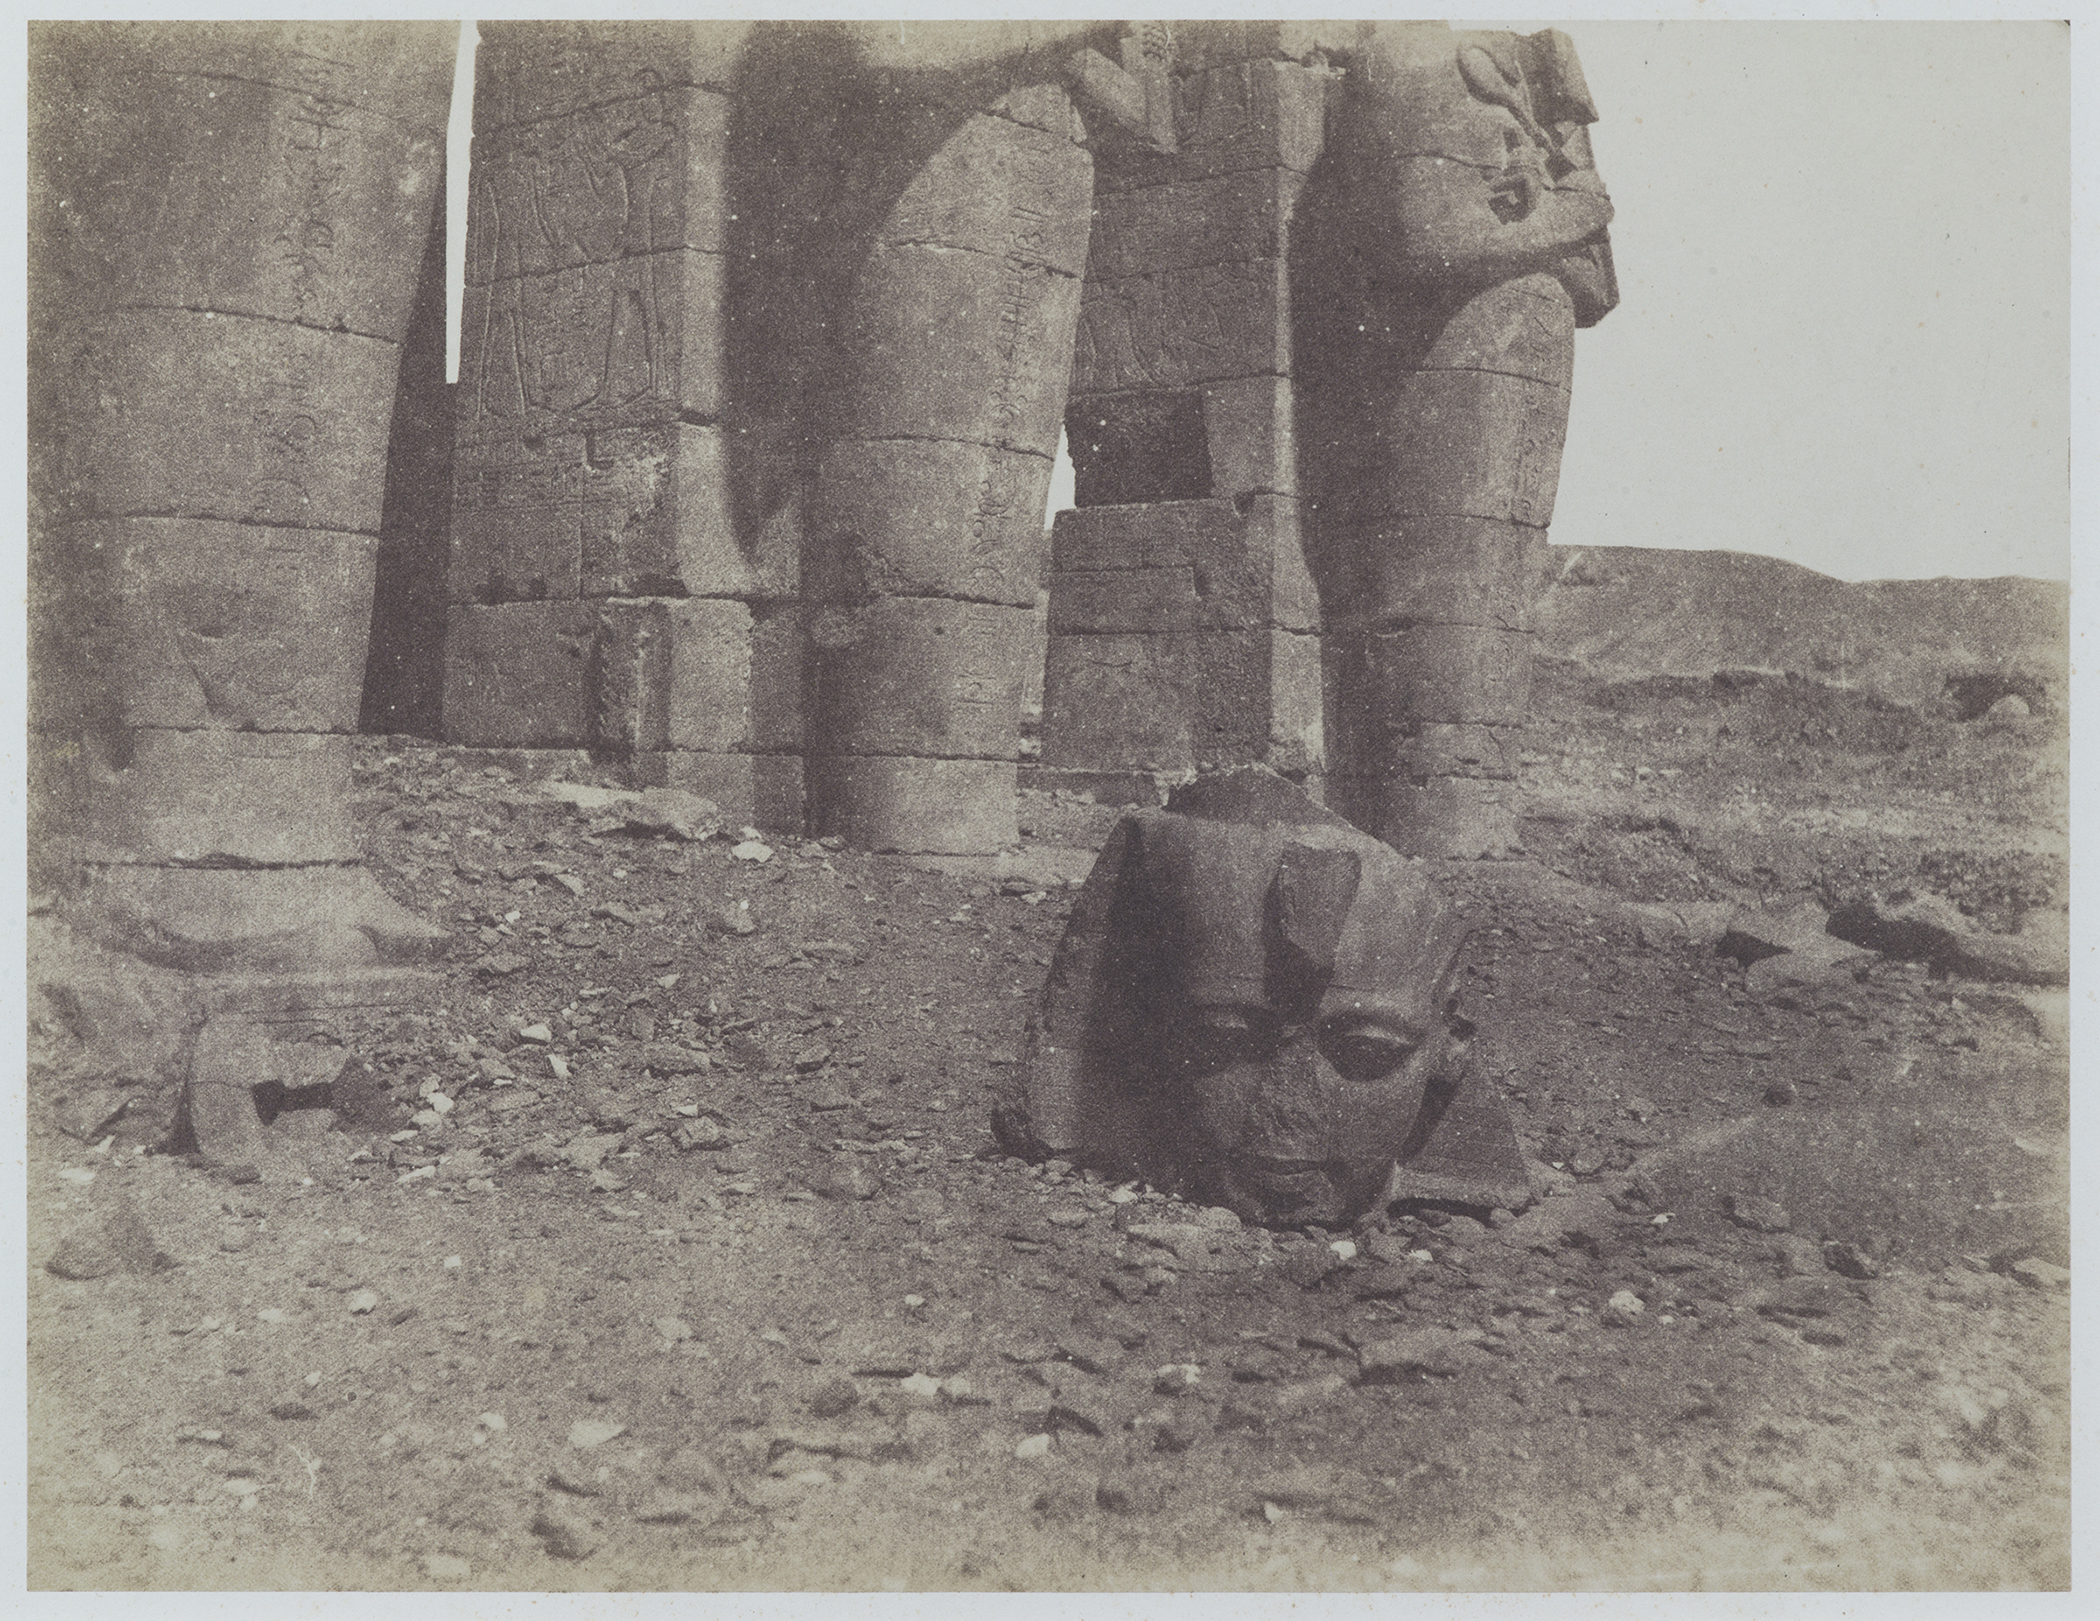 John Beasley Greene, [Ramesseum, with the head from a colossus of Ramesses II], 1854–55; collection of Richard and Ronay Menschel